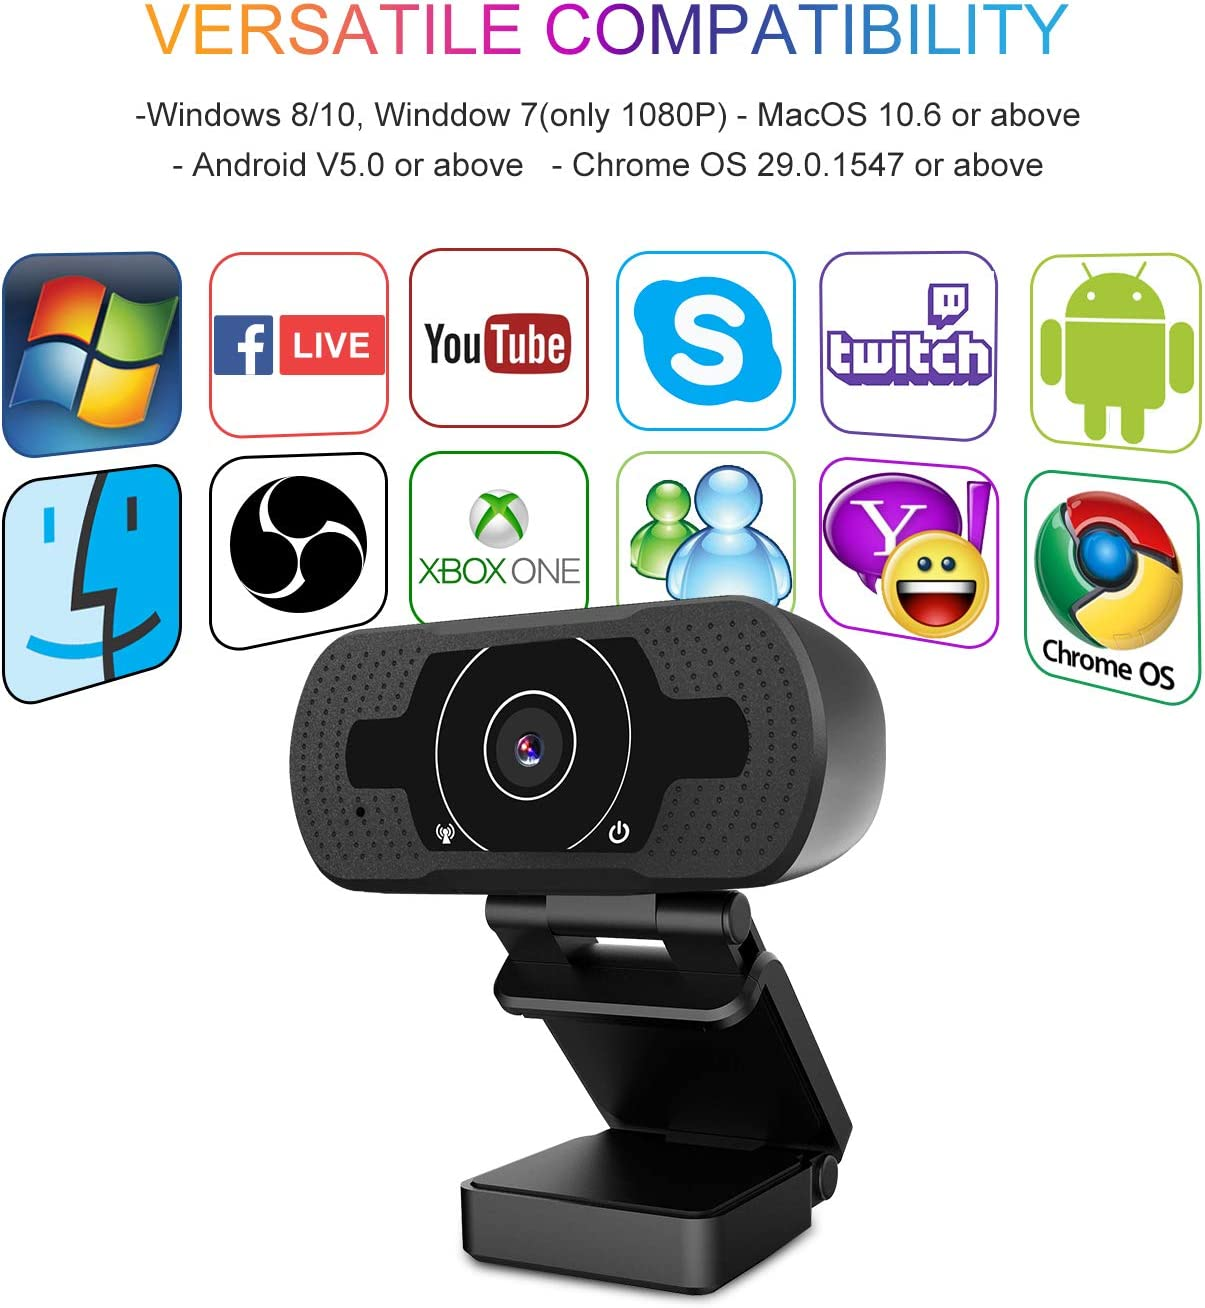 Auto Focus Web Camera for Video Conference OBS Twitch YouTube XBOX ONE Game Streaming TV Skype HD Pro Webcam 4K//1080P Akyta 8MP PC Laptop Computer Camera USB Webcam with Microphone 4K webcam